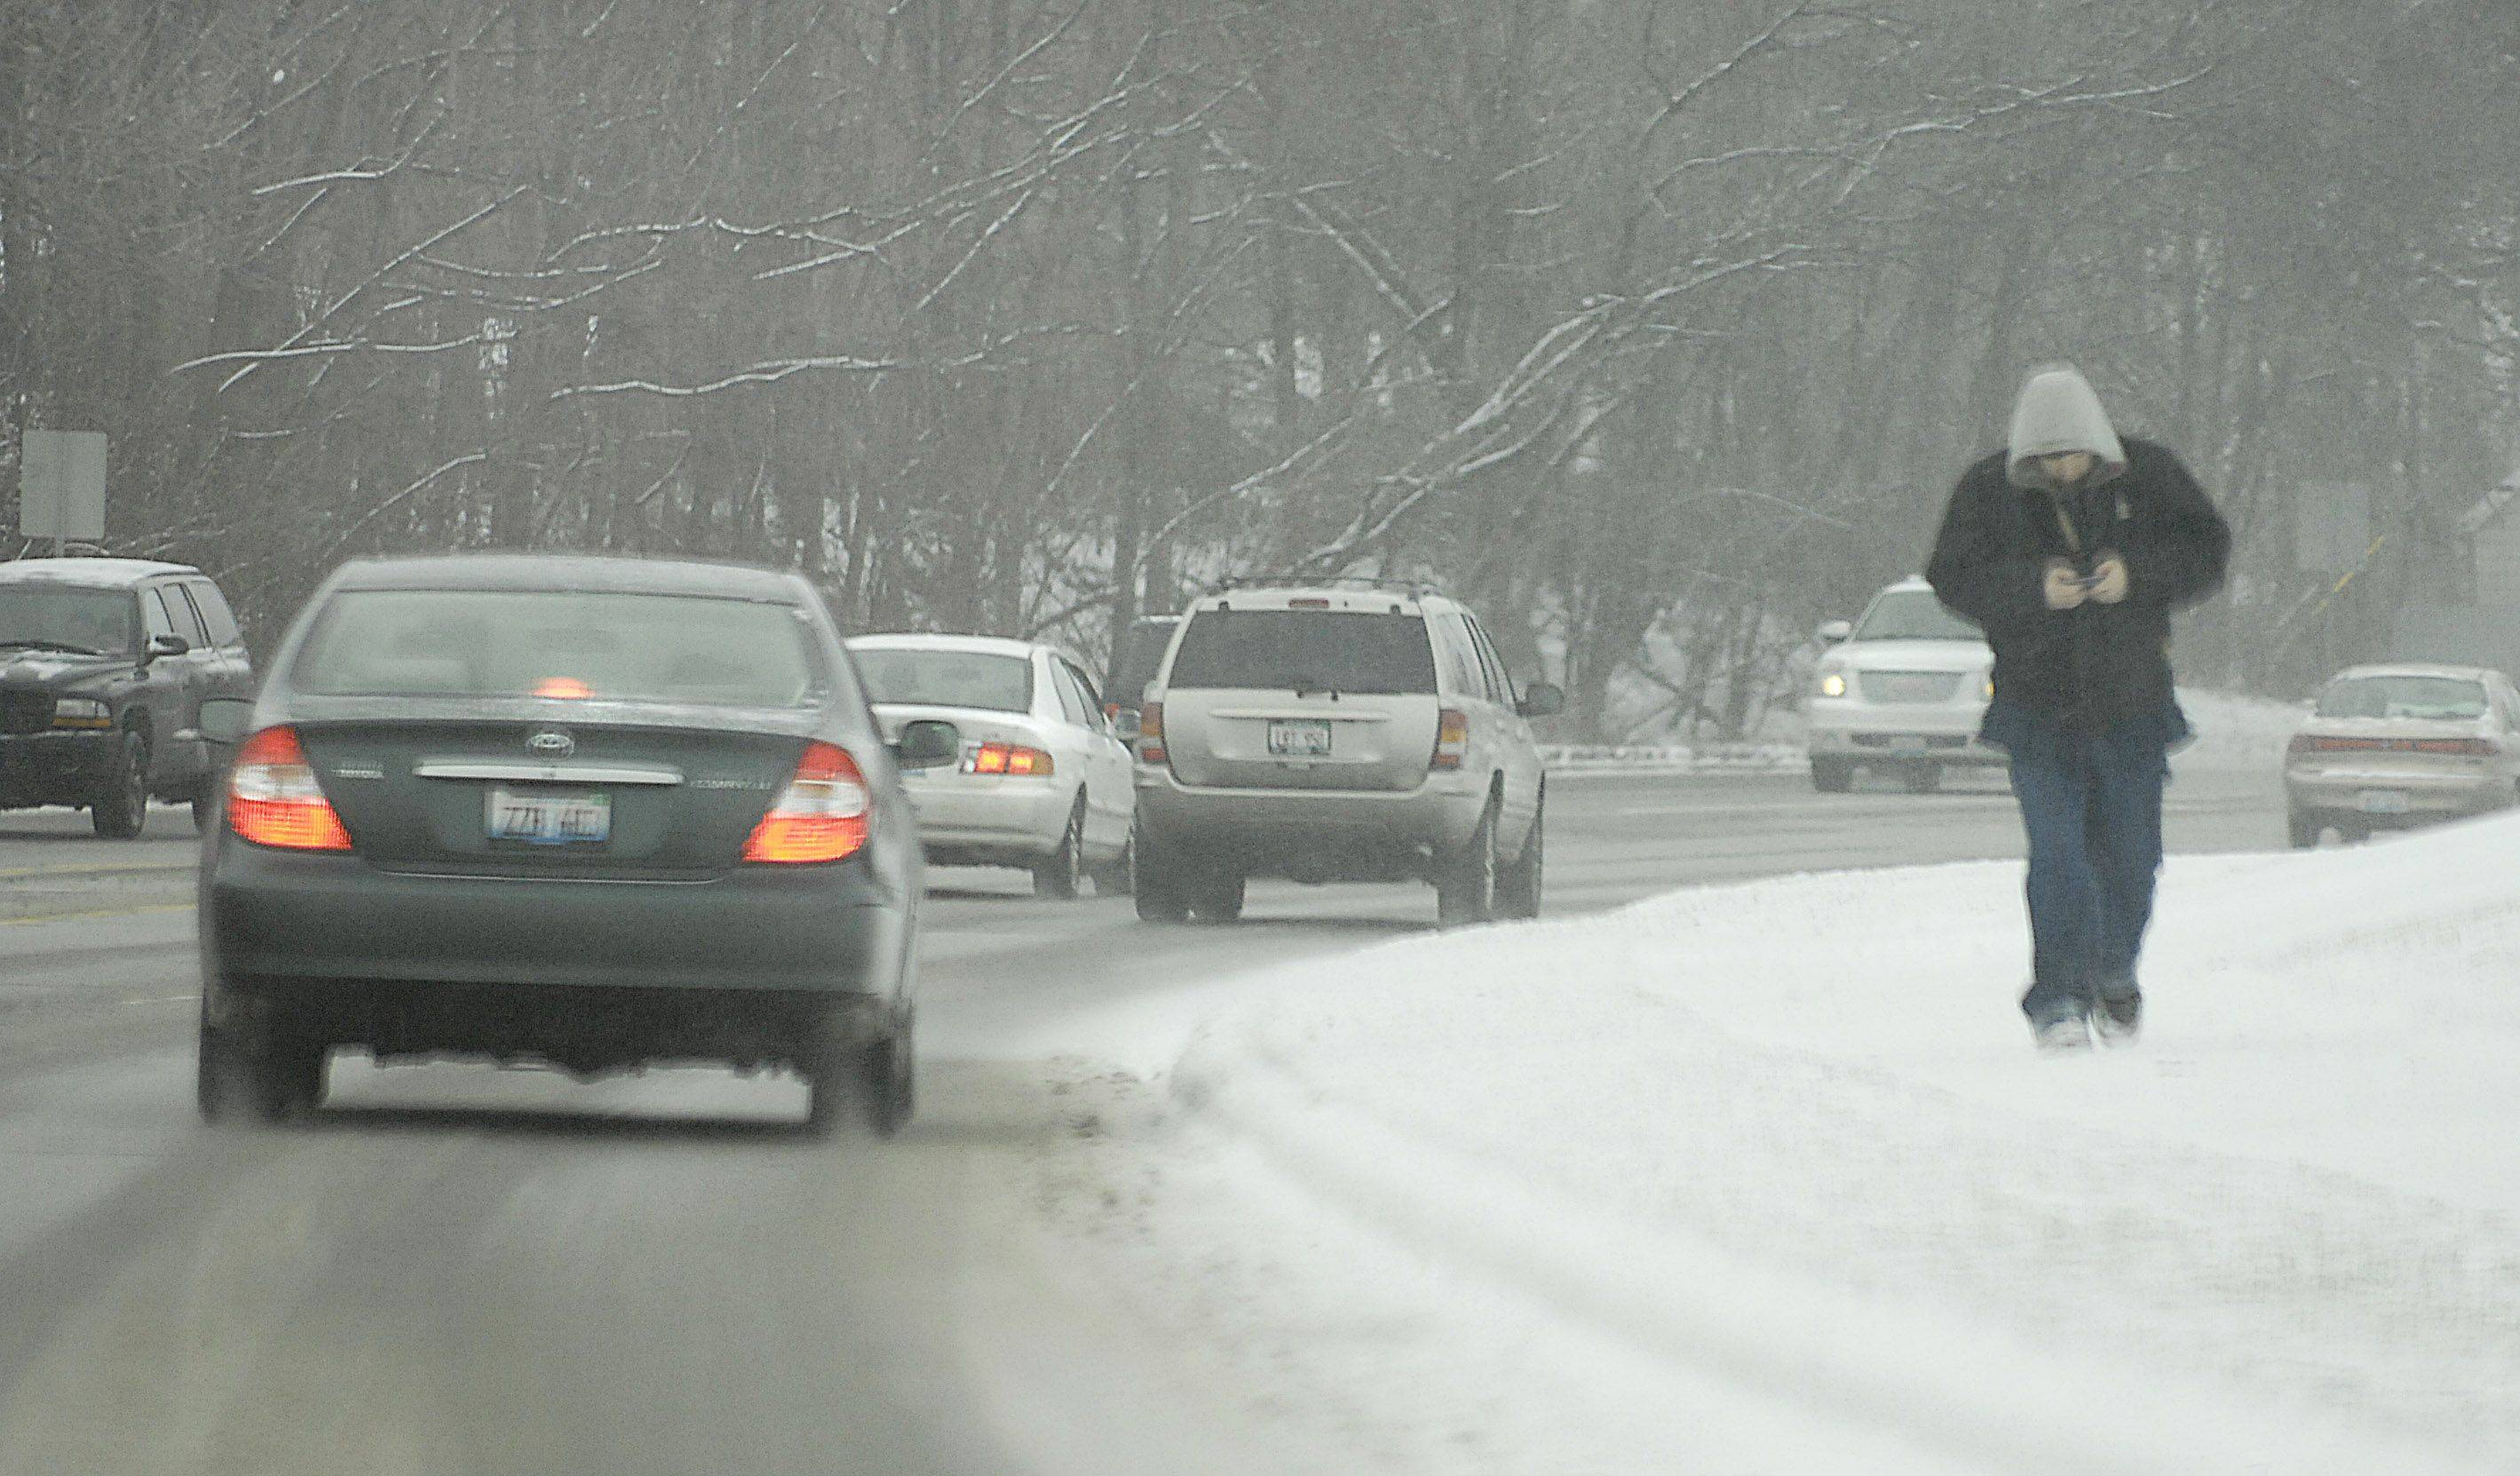 A man keeps his head down as he makes his way up a hill on Algonquin Road in Algonquin Sunday afternoon.